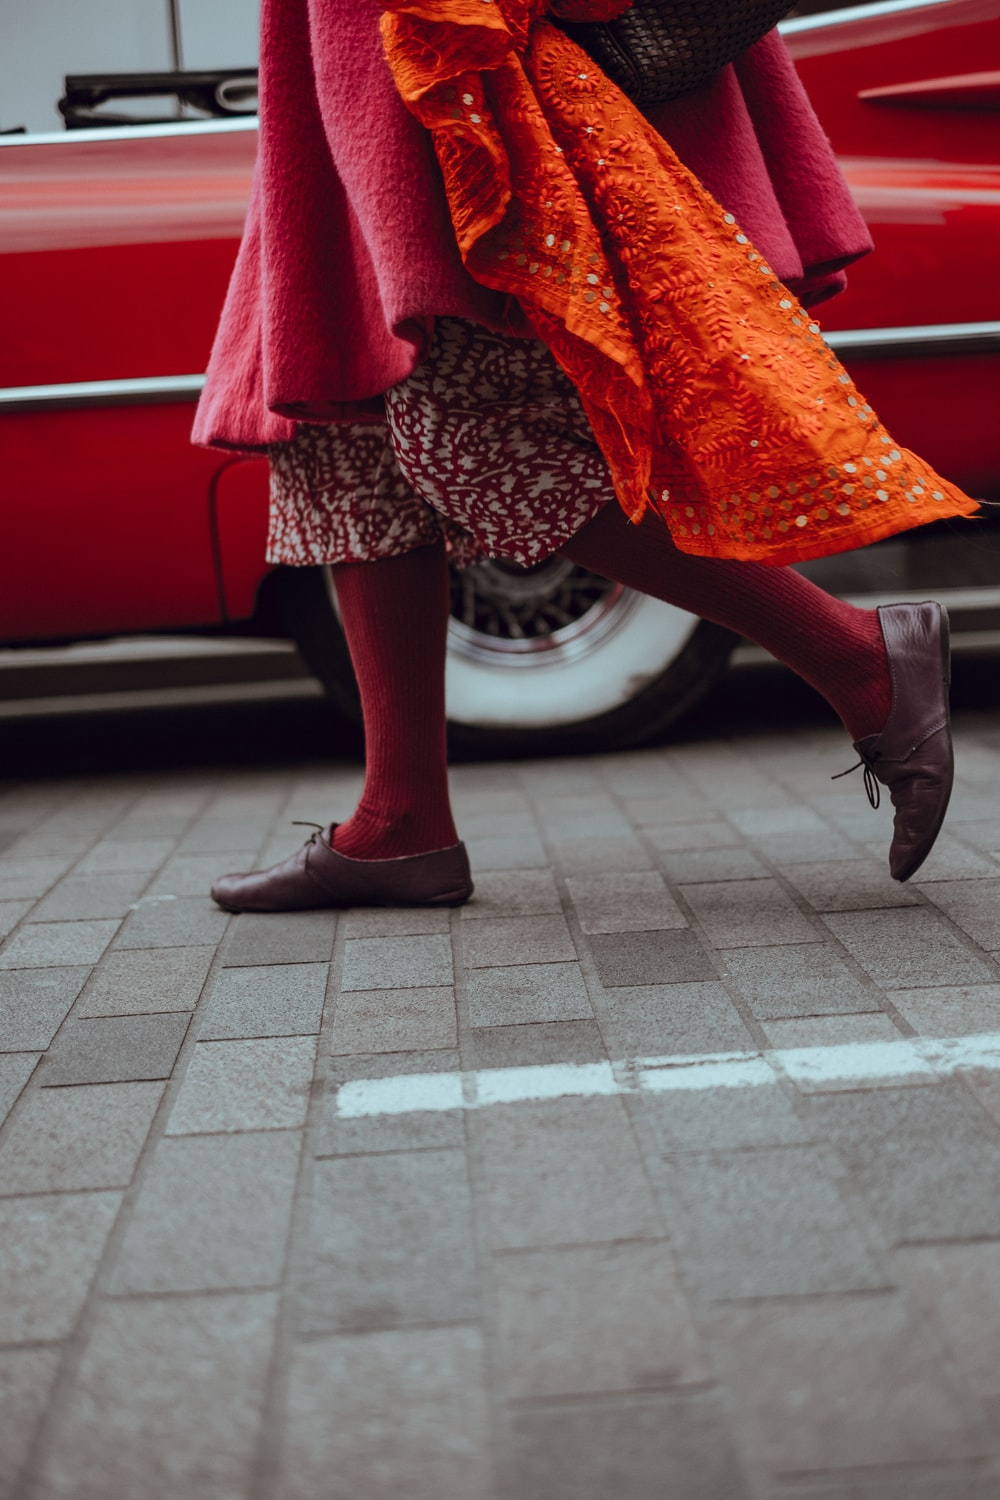 photo of person walking in front of red vehicle